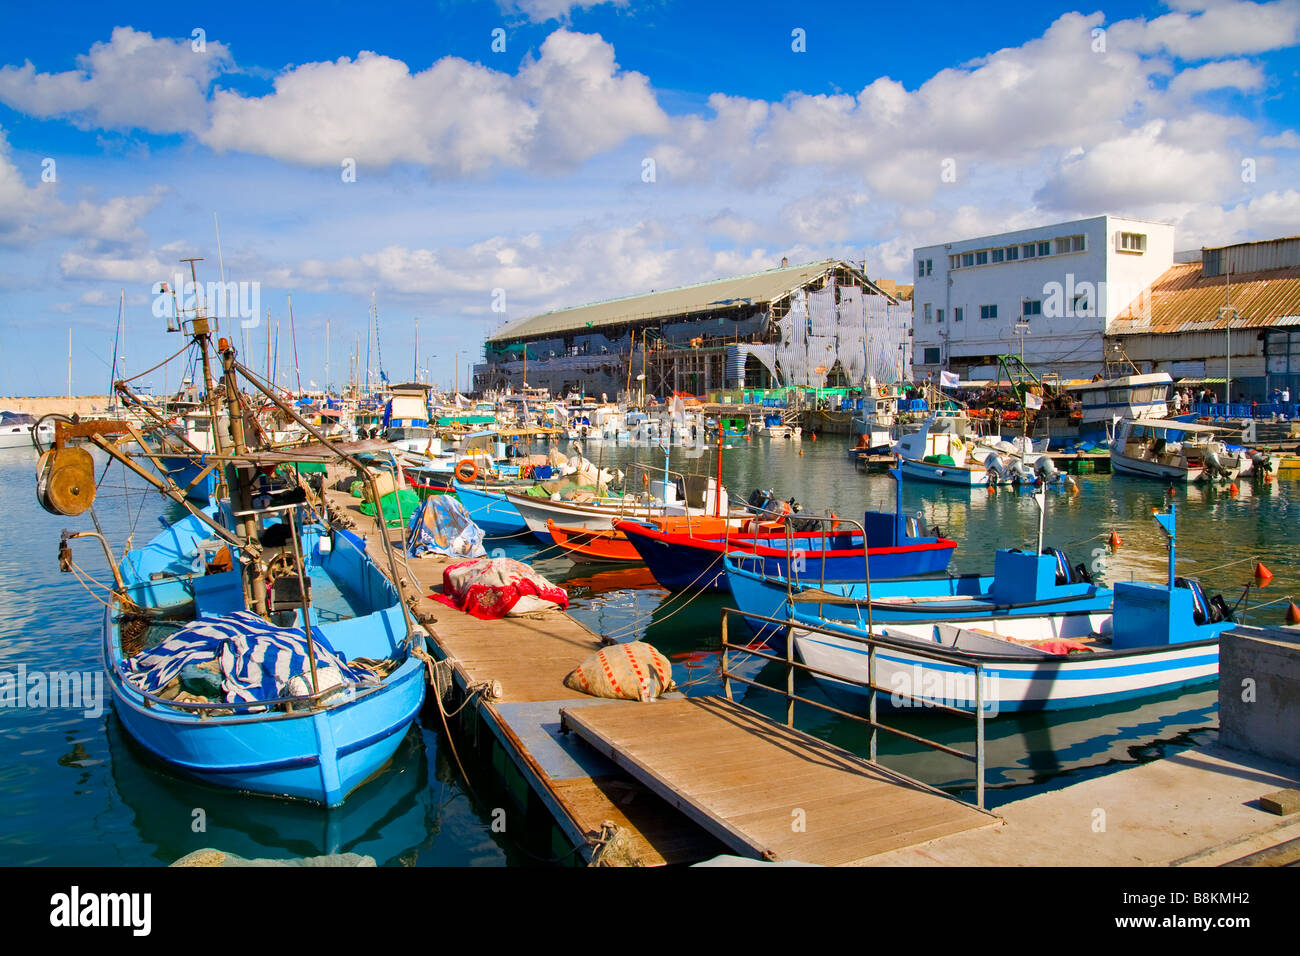 Lots of boats in picturesque port of Tel Aviv Israel - Stock Image